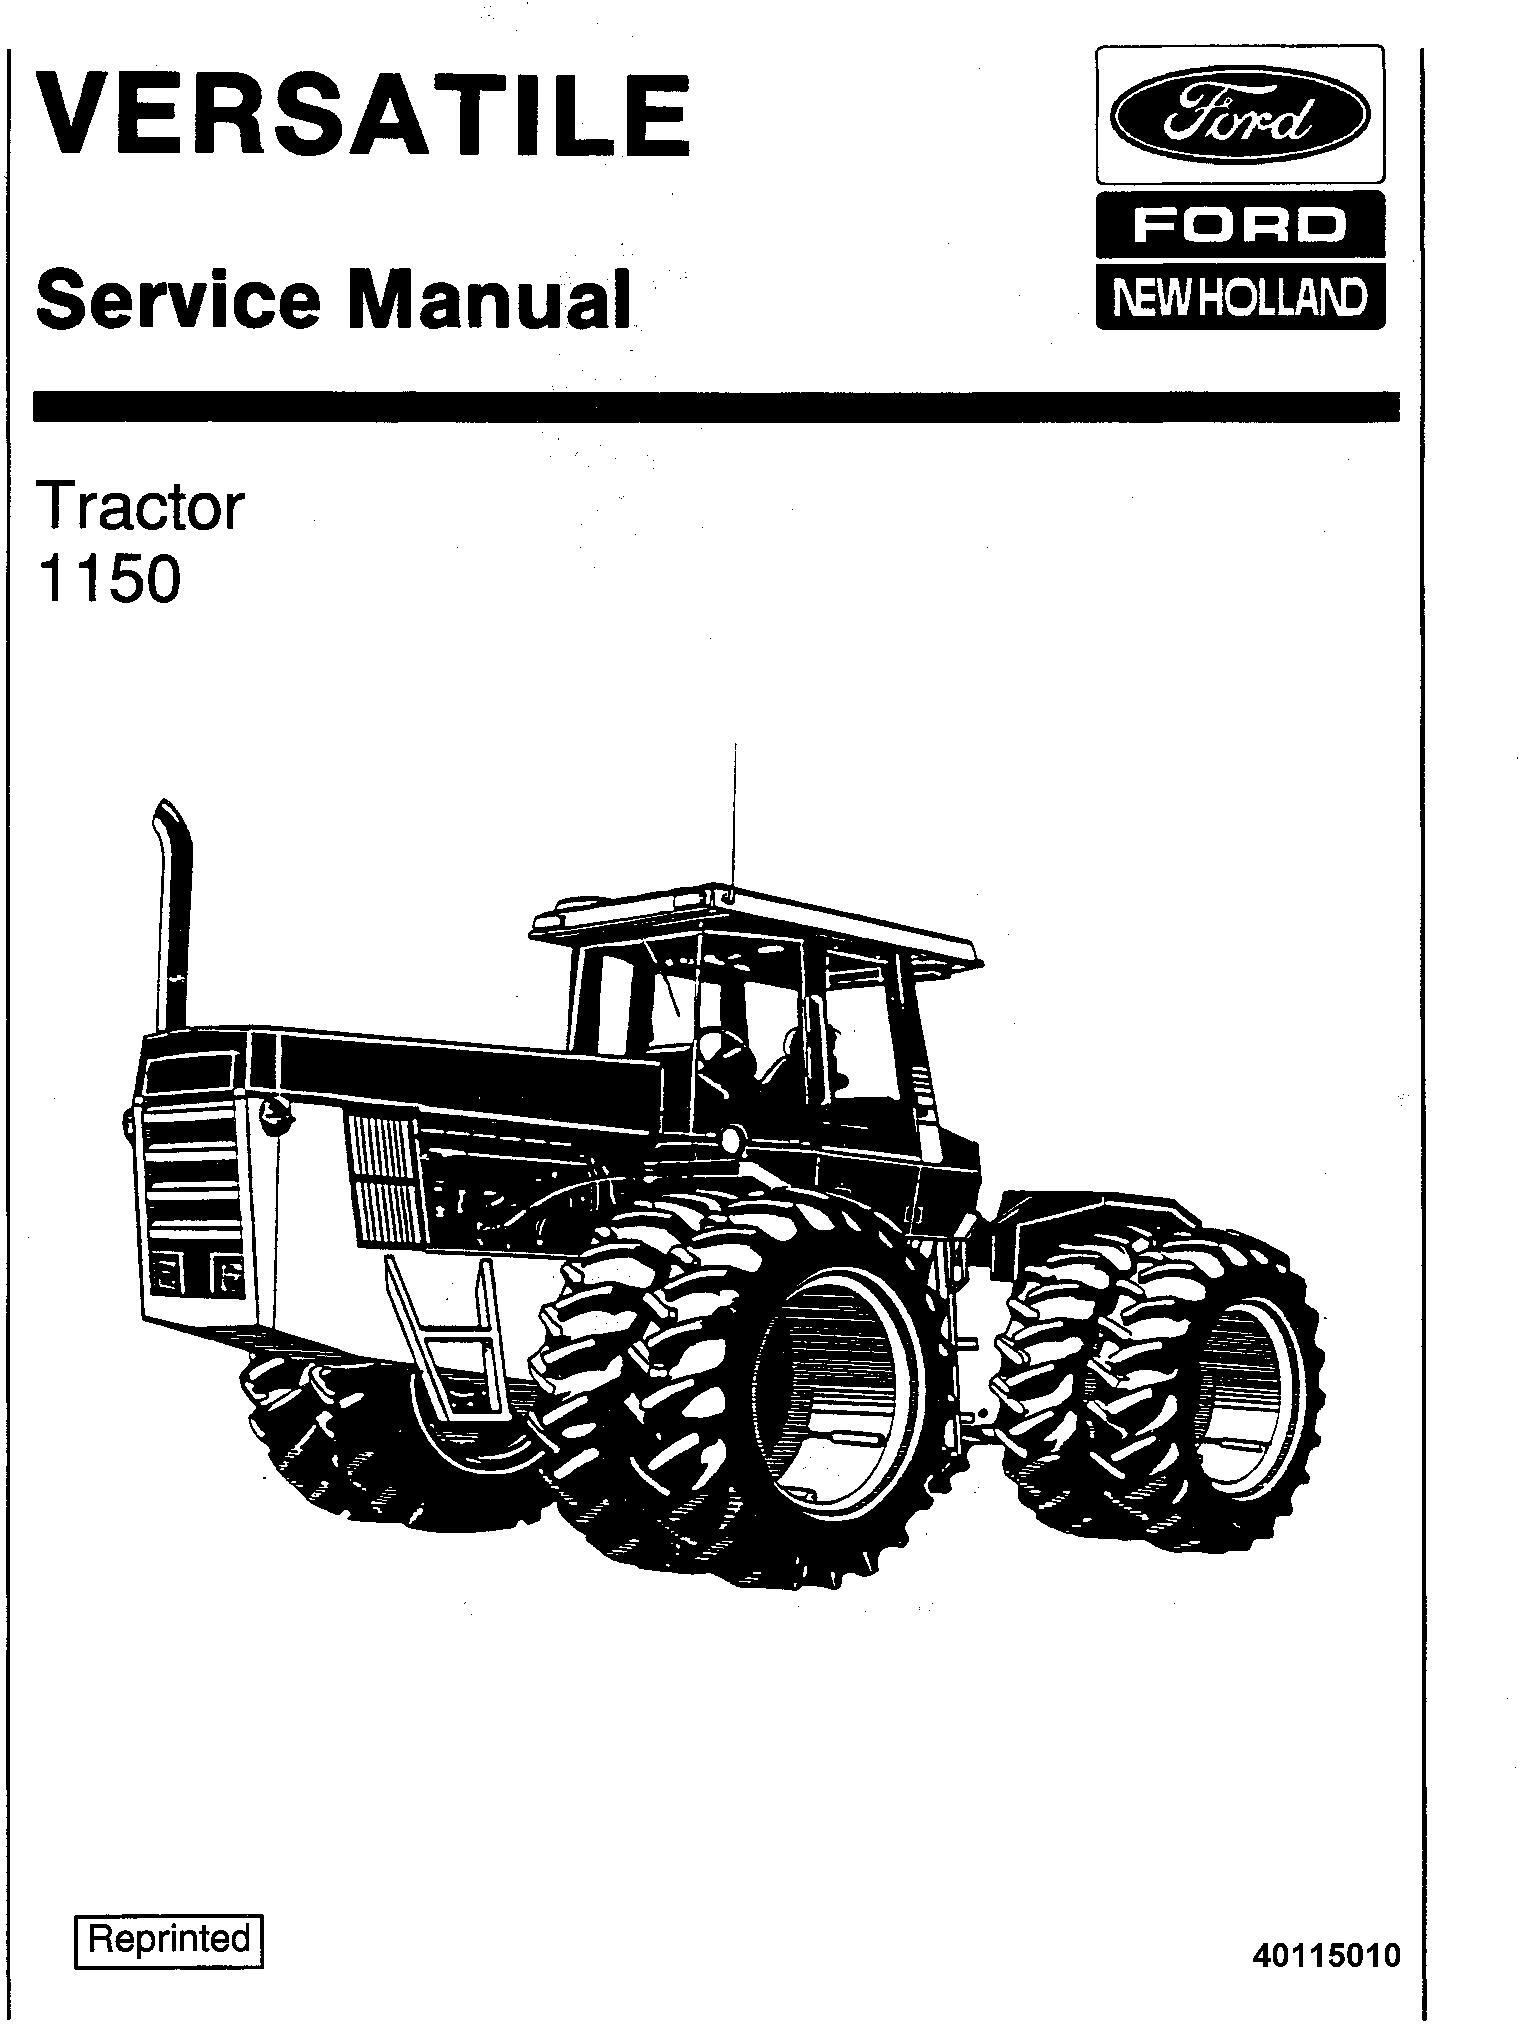 Ford 1150 4WD Tractor Service Manual (V74801) / Deere